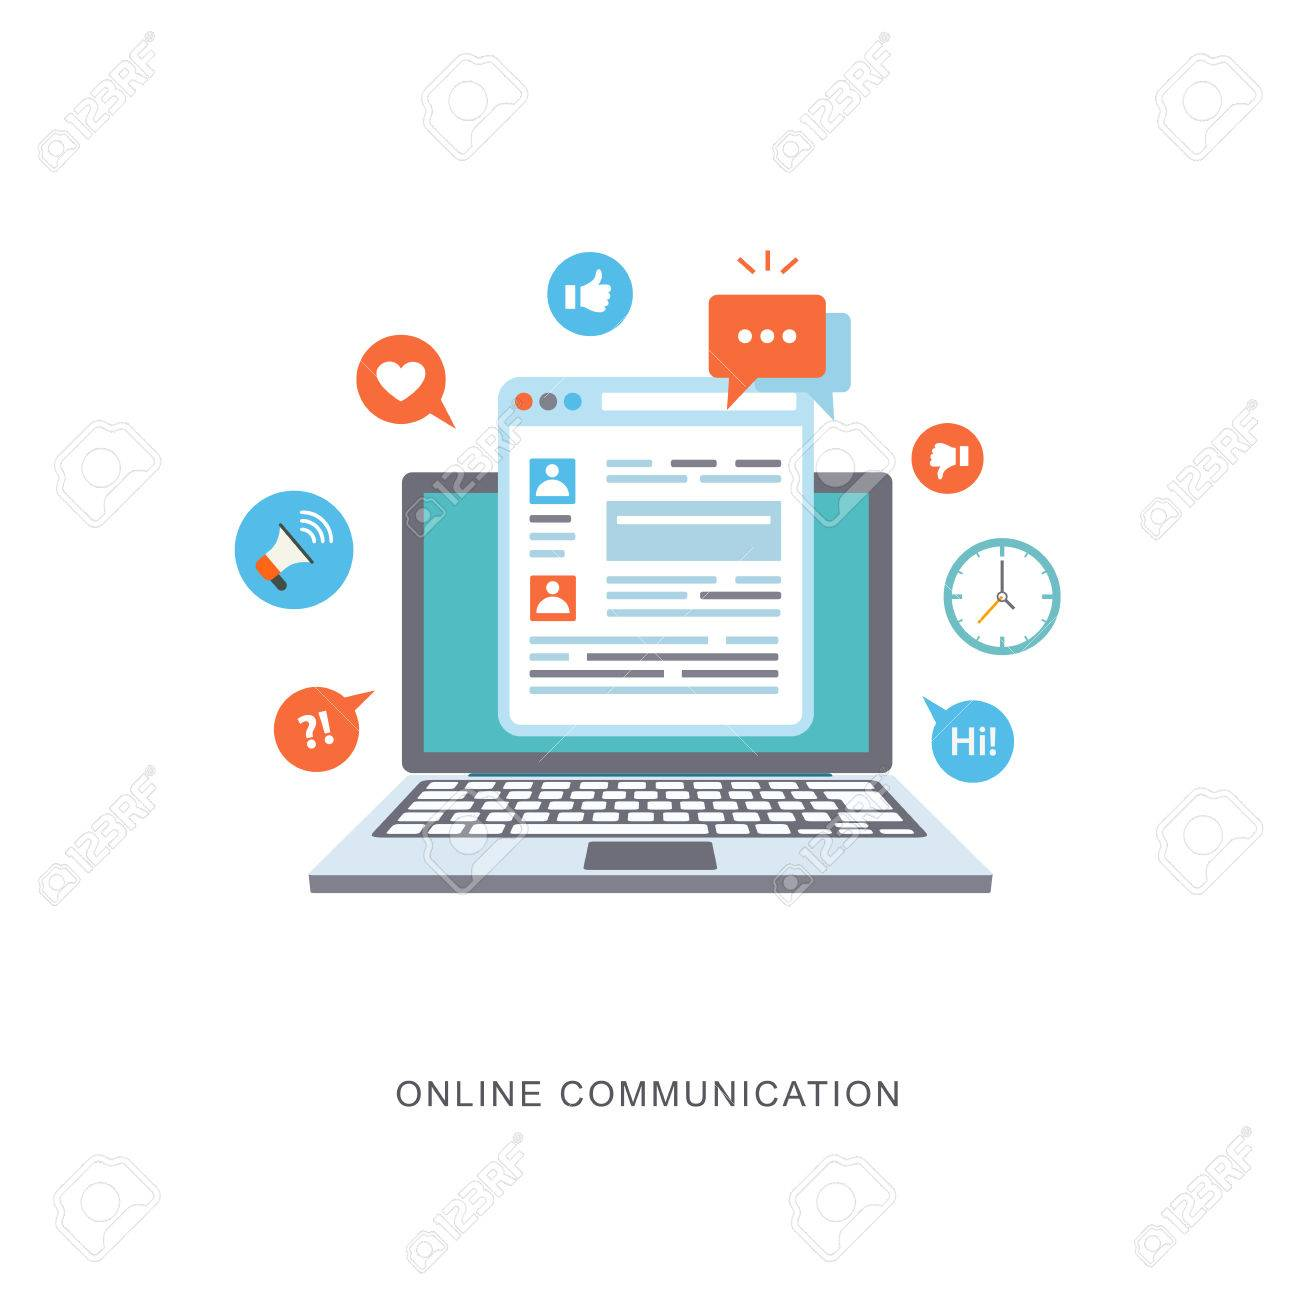 Online communication flat illustration with icons. eps8 Stock Vector - 40458015